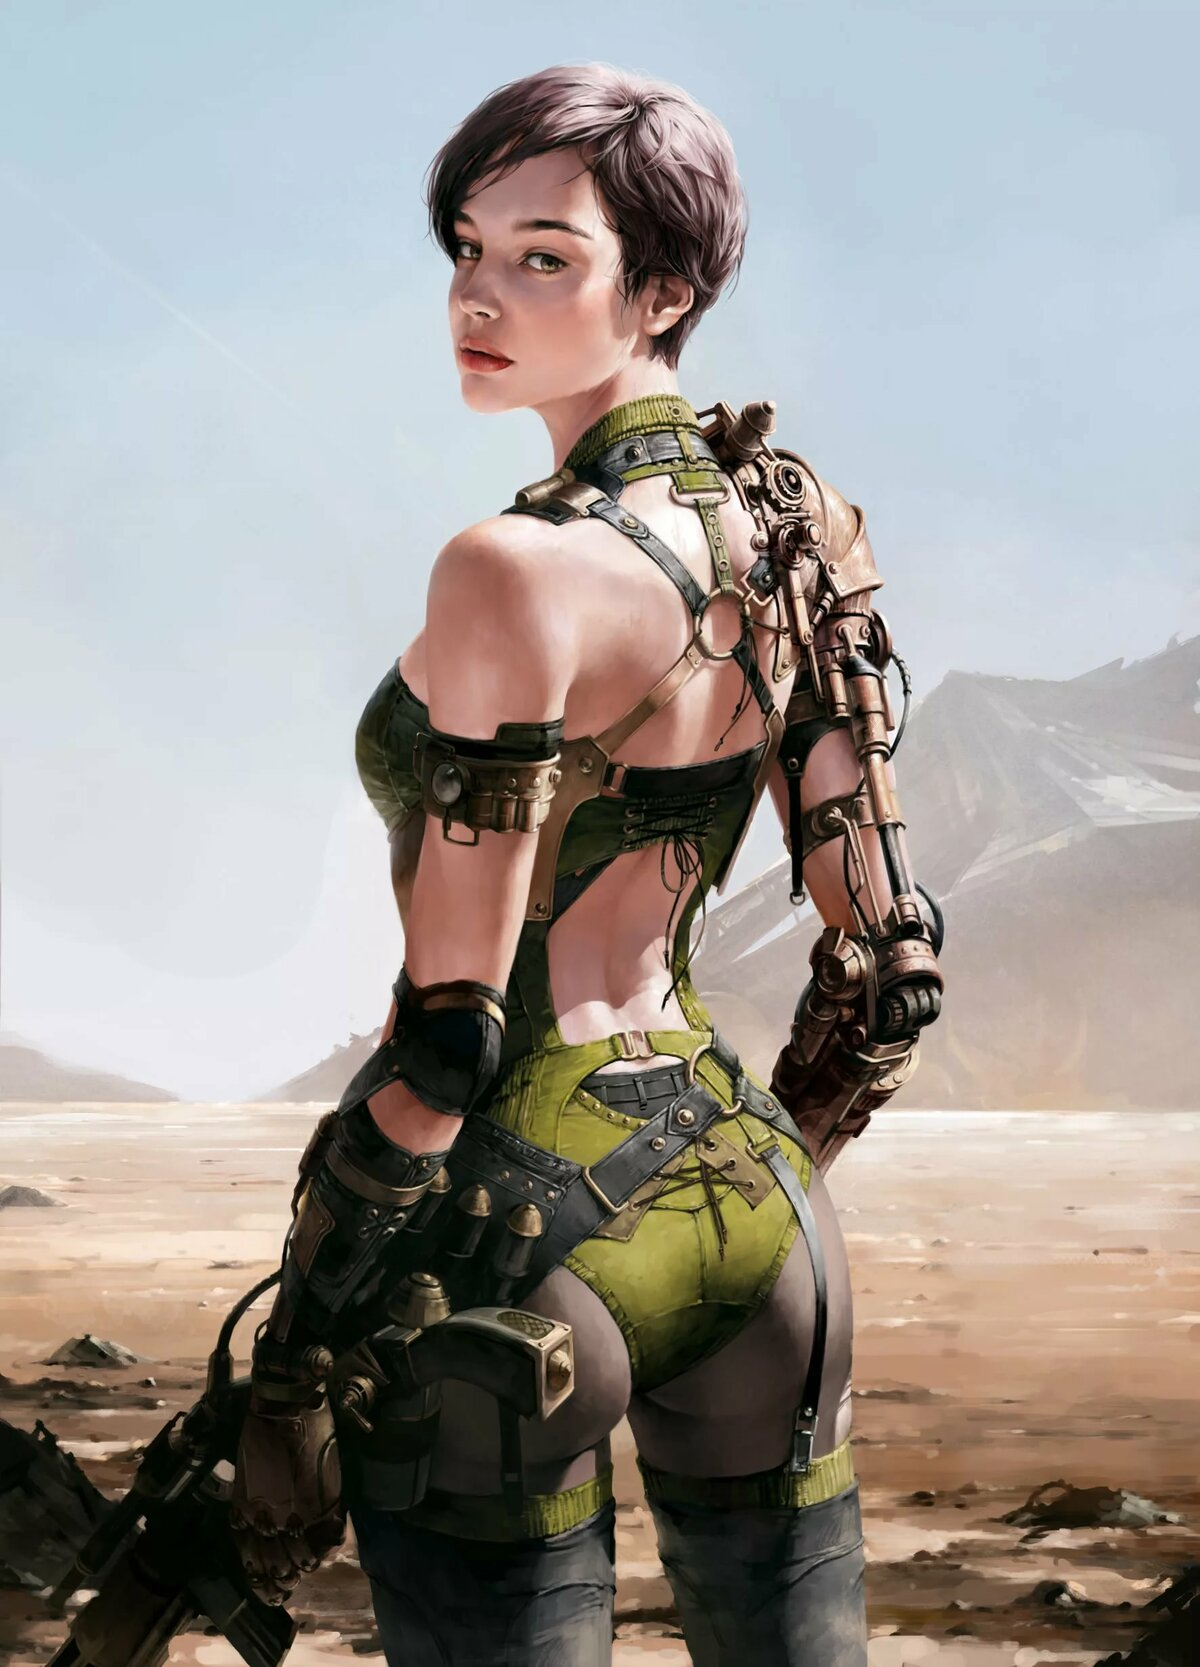 Topless scifi girls